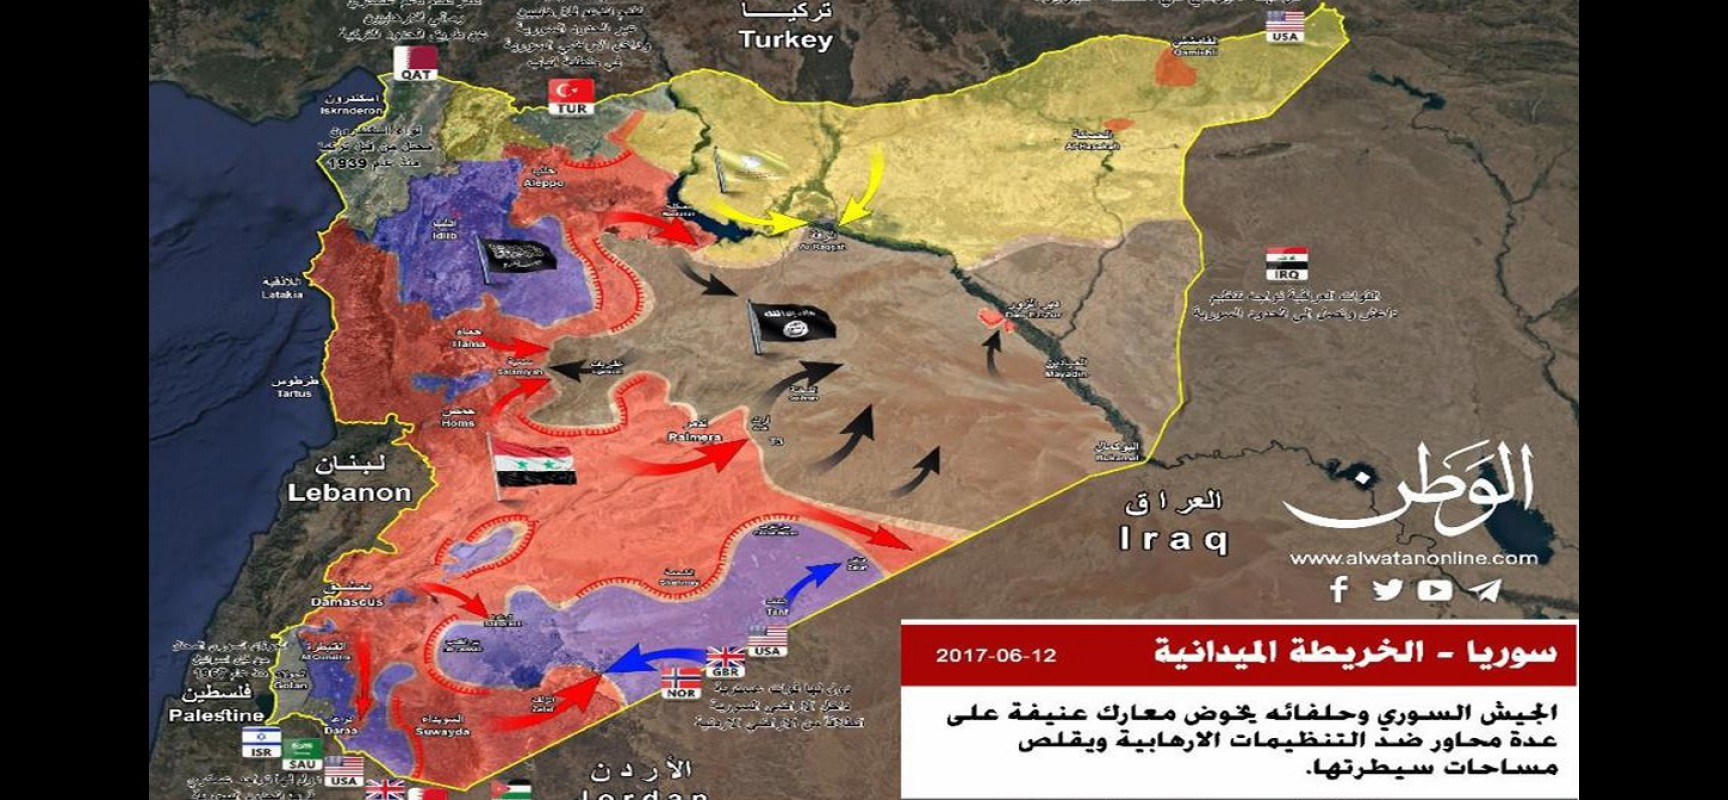 religious wars, wars and rumors of wars, military history, Syrian Civil War map, War in Syria map, Assad